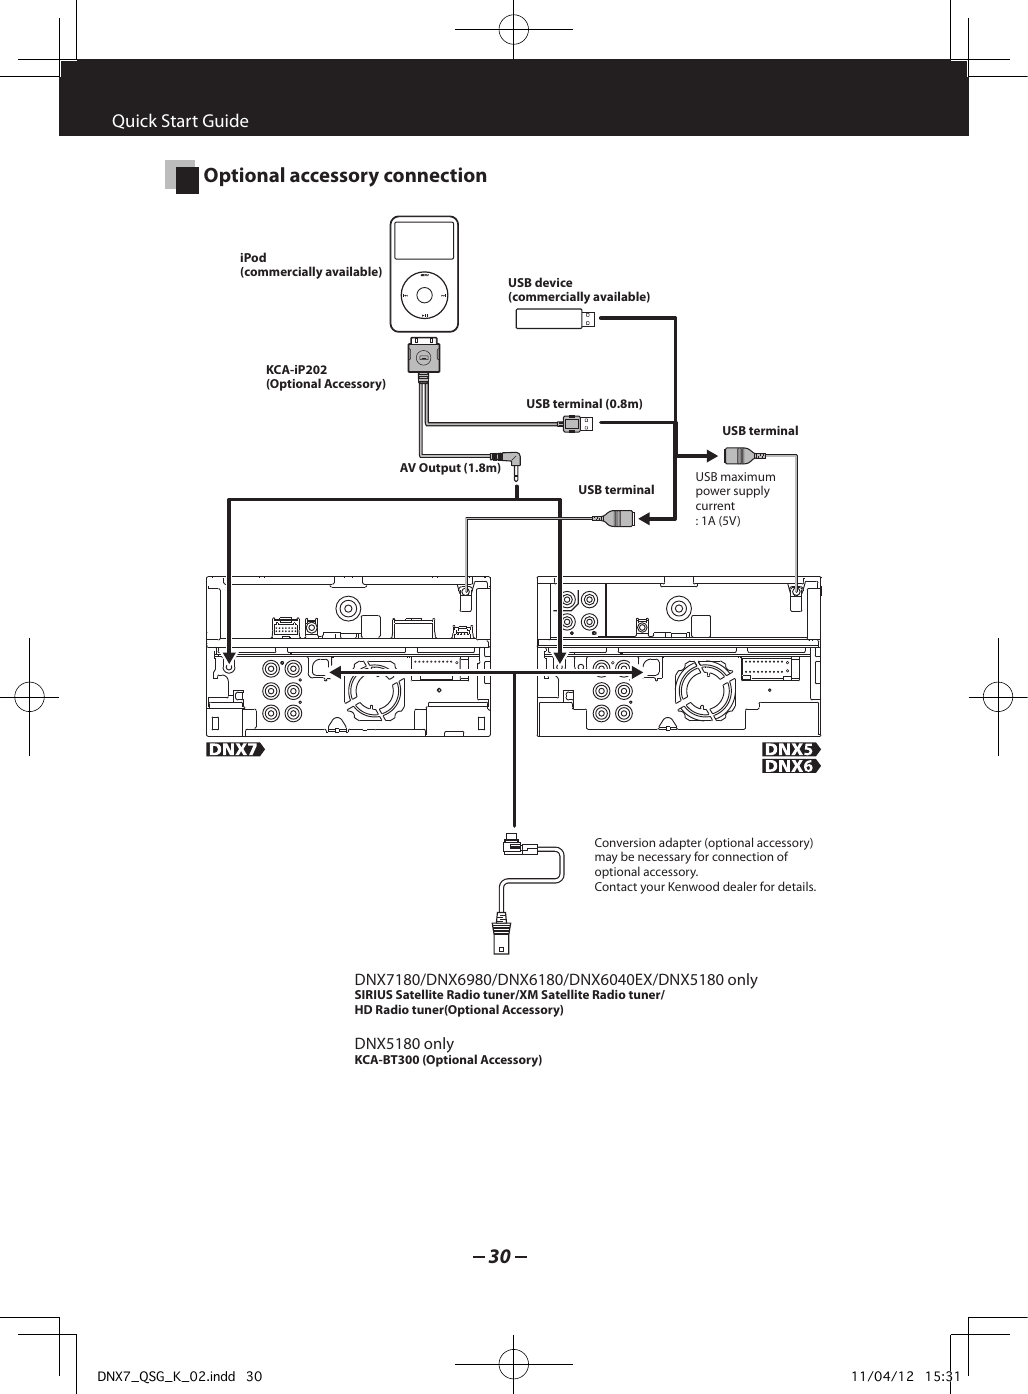 Kenwood Dnx6980 Wiring Diagram. . Wiring Diagram on